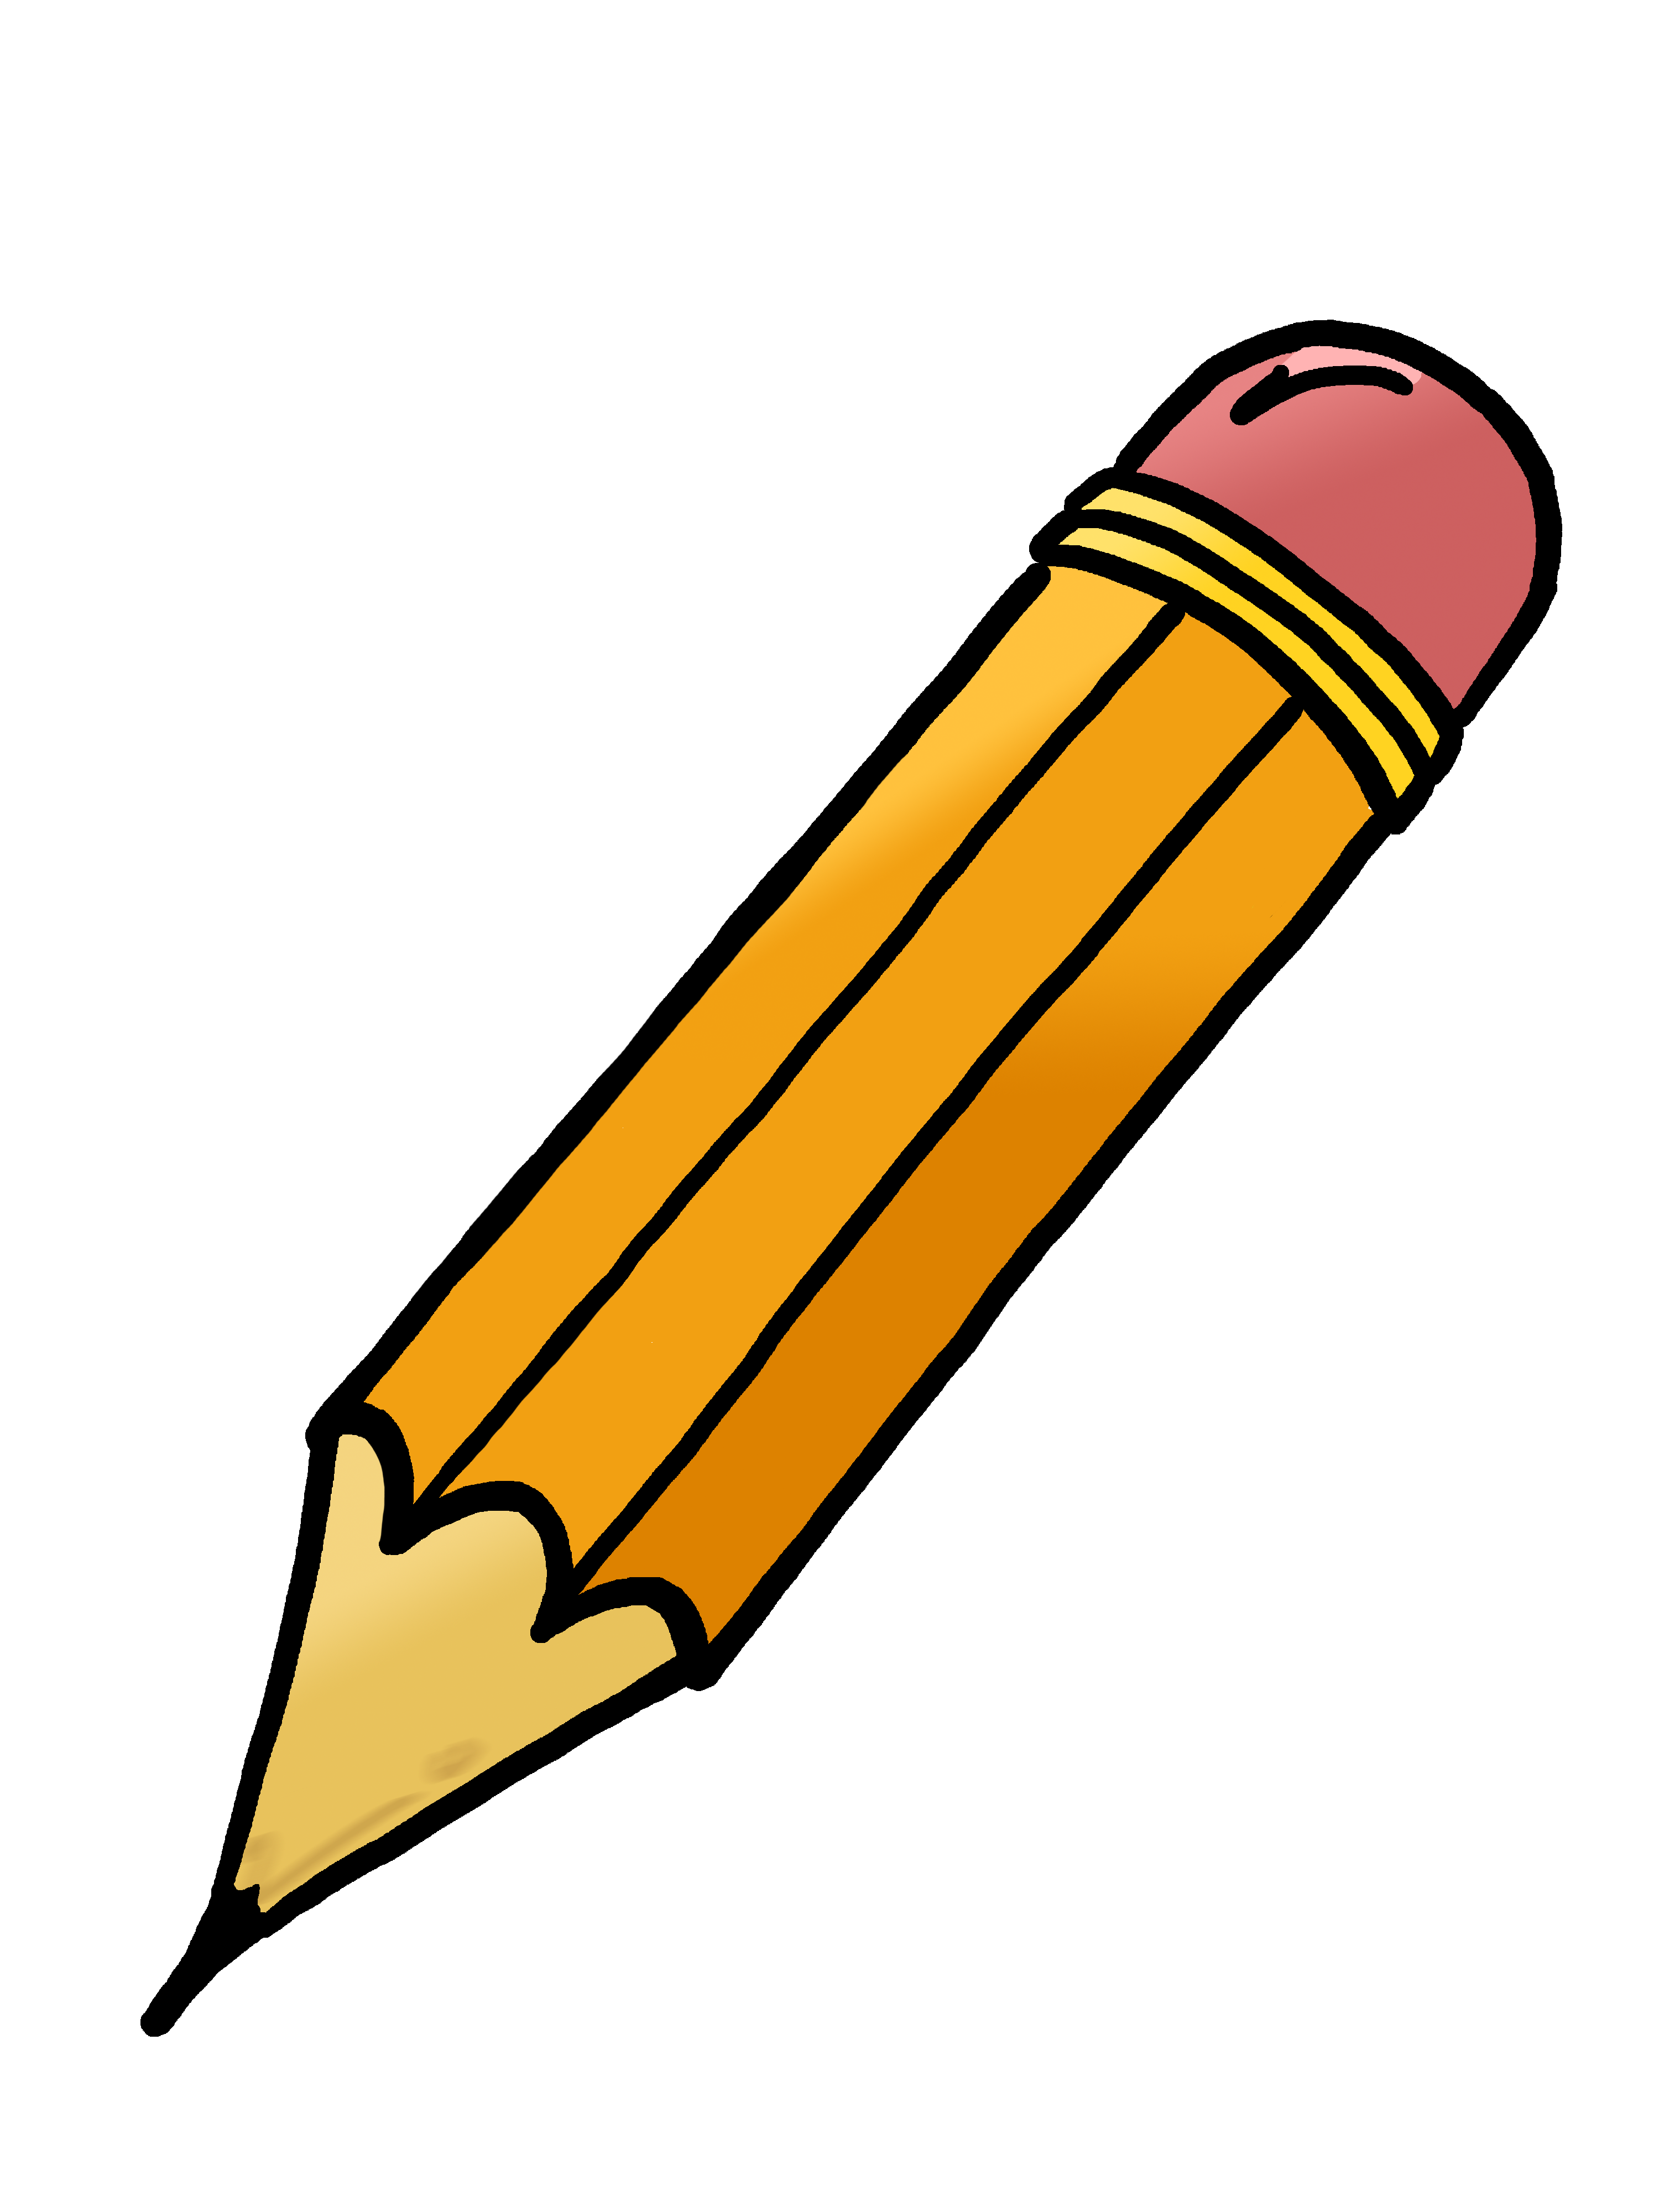 Pencil Clipart Black And White Horizontal